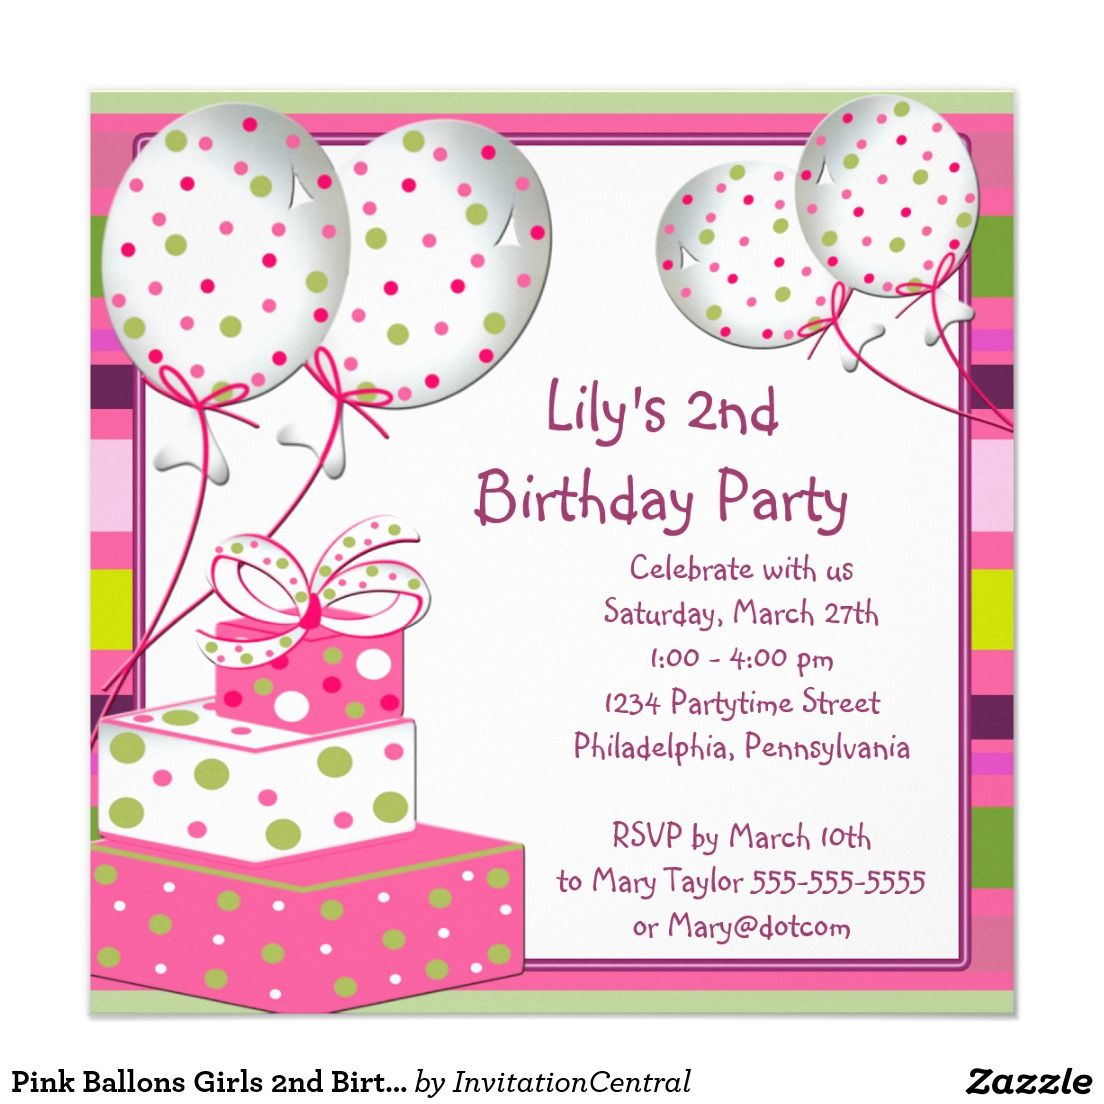 Pink Ballons Girls 2nd Birthday Party Invitation | Pinterest | Party ...